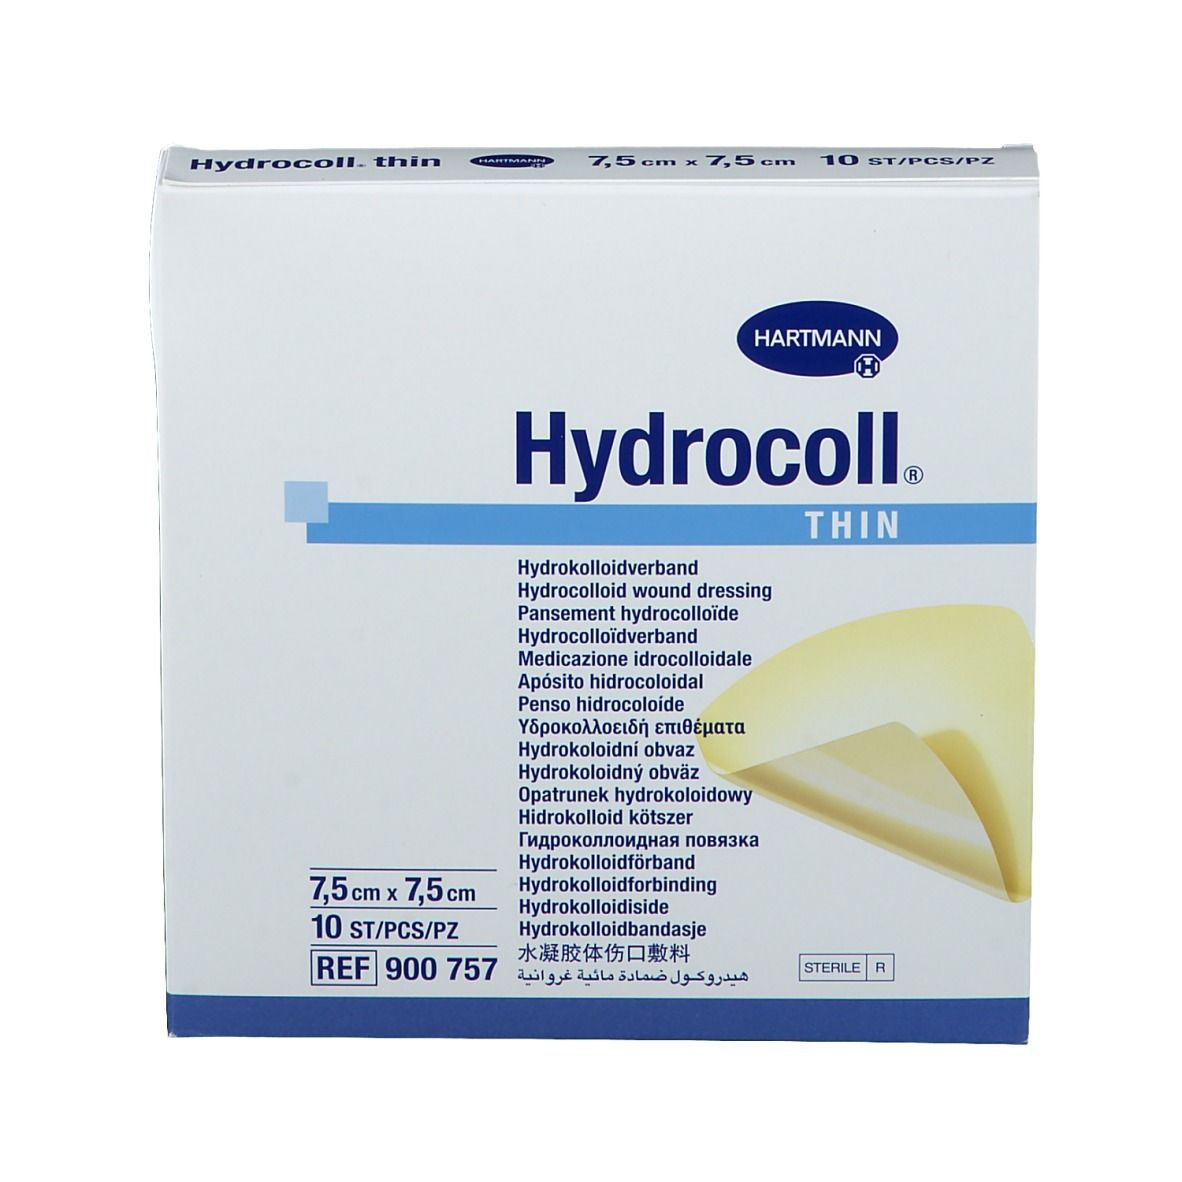 Hydrocoll® thin Wundverband steril 7,5 x 7,5 cm